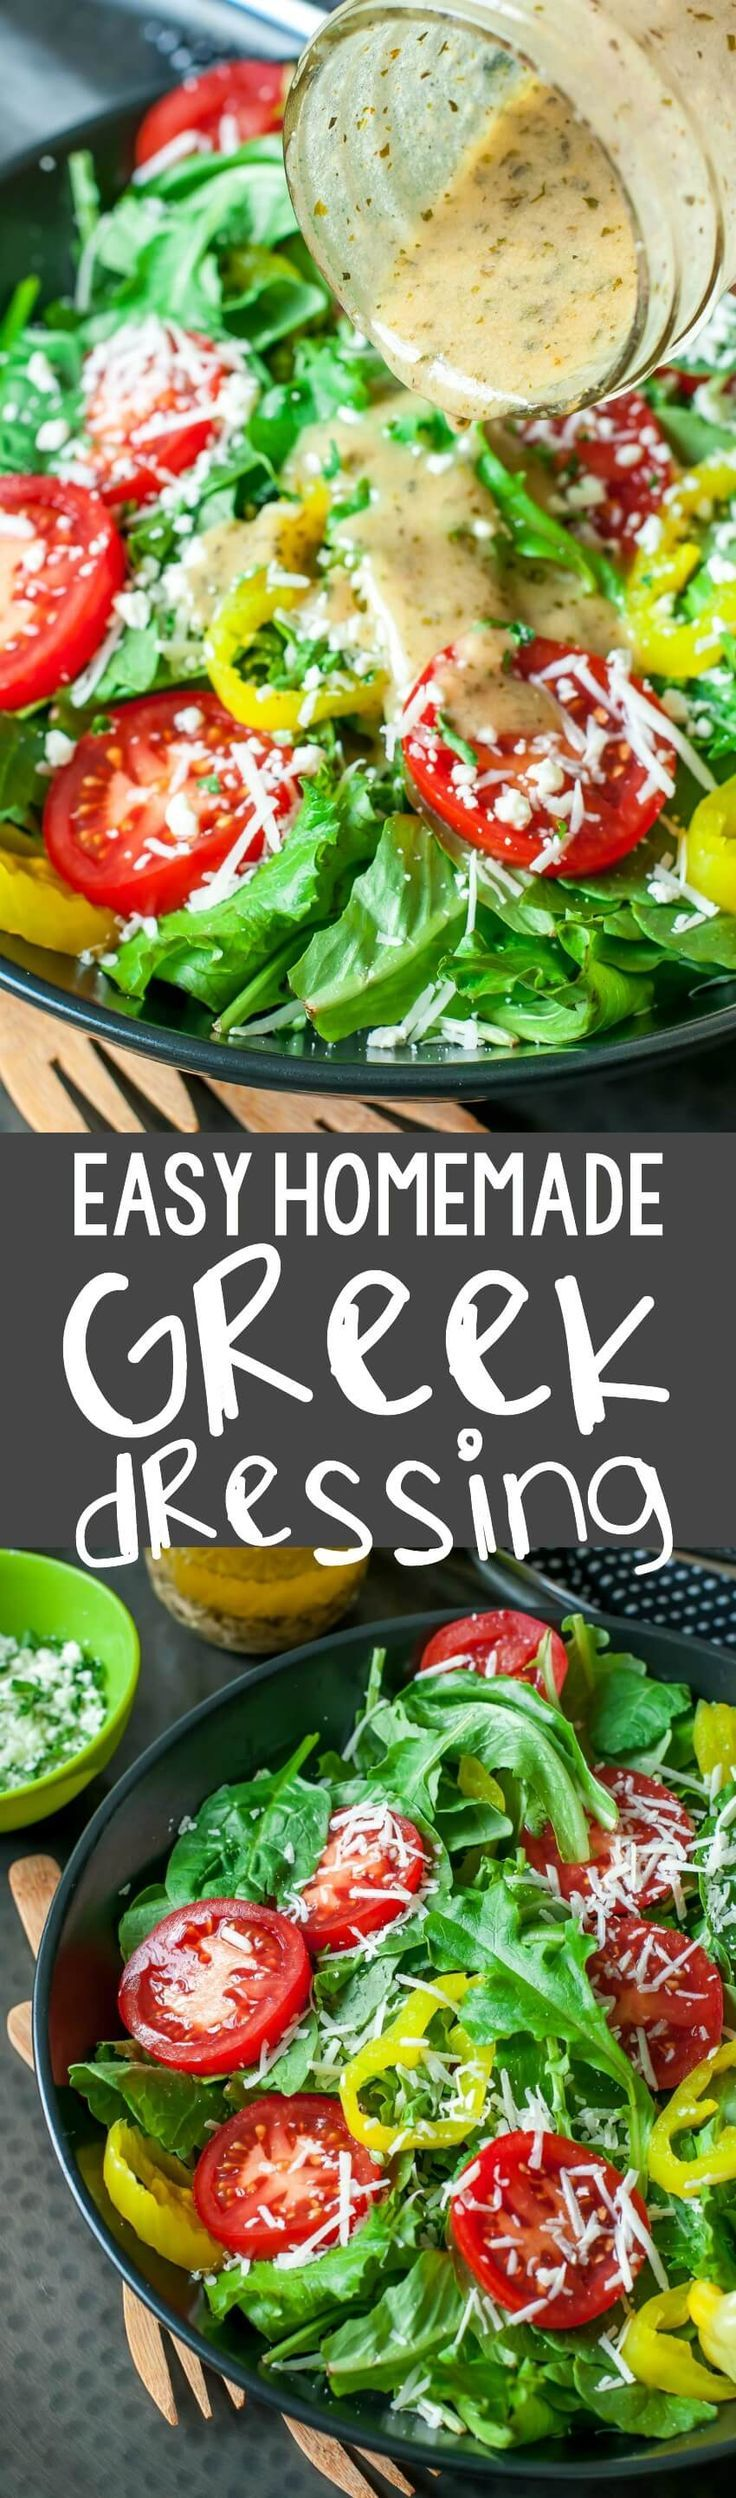 Ditch the sketchy processed bottled dressing and whip up this super quick, super easy homemade Greek dressing!